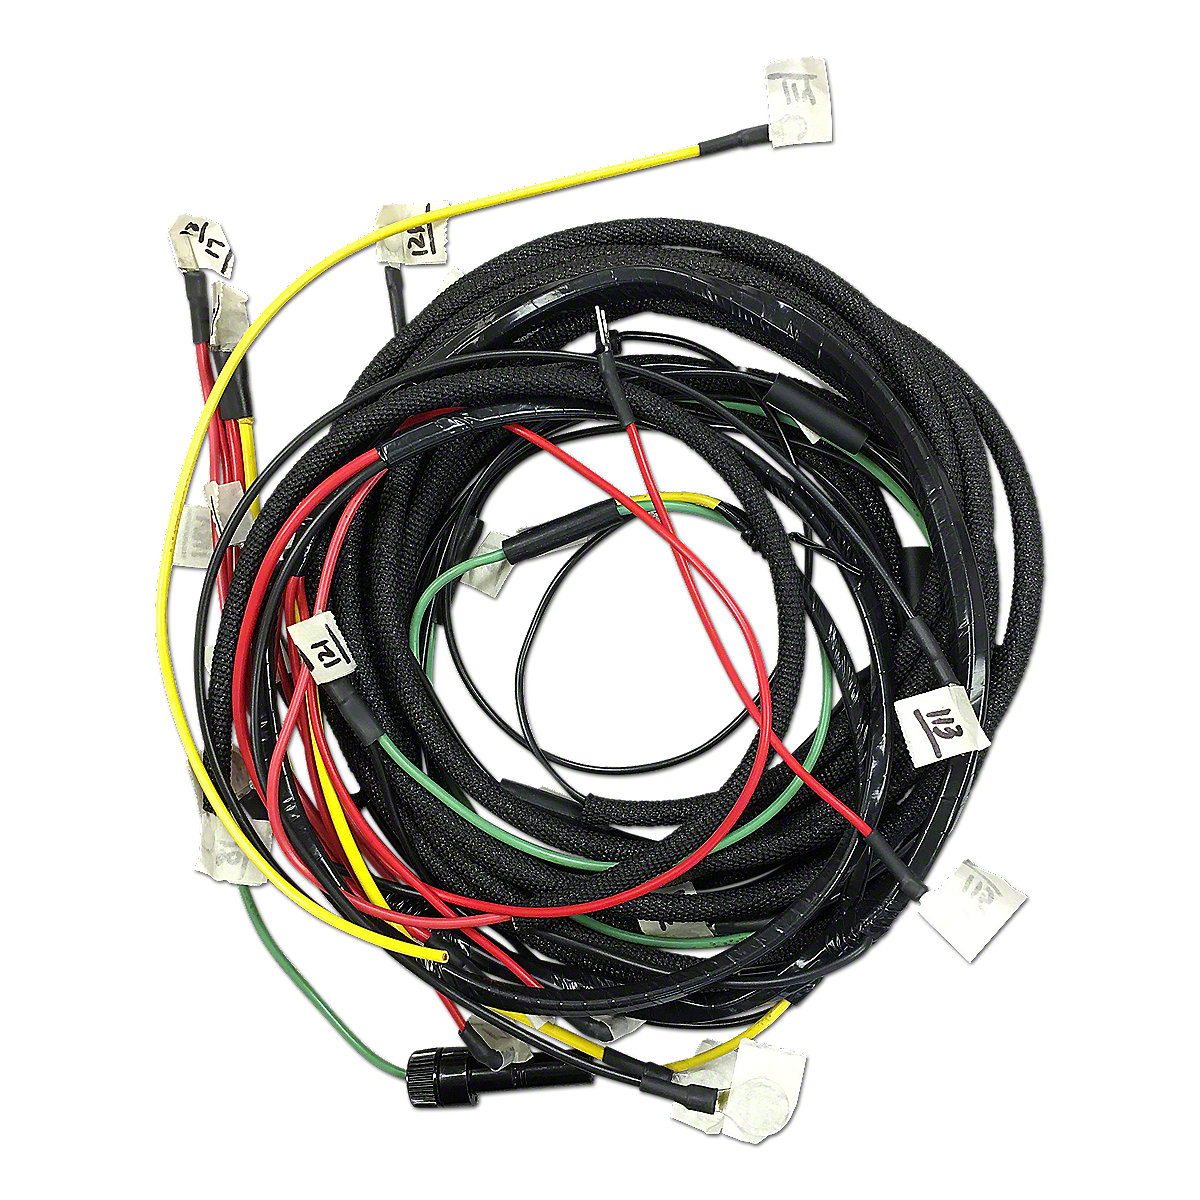 Restoration Quality Wiring Harness Fds3782 Alternator For Tractors Using 1 Wire